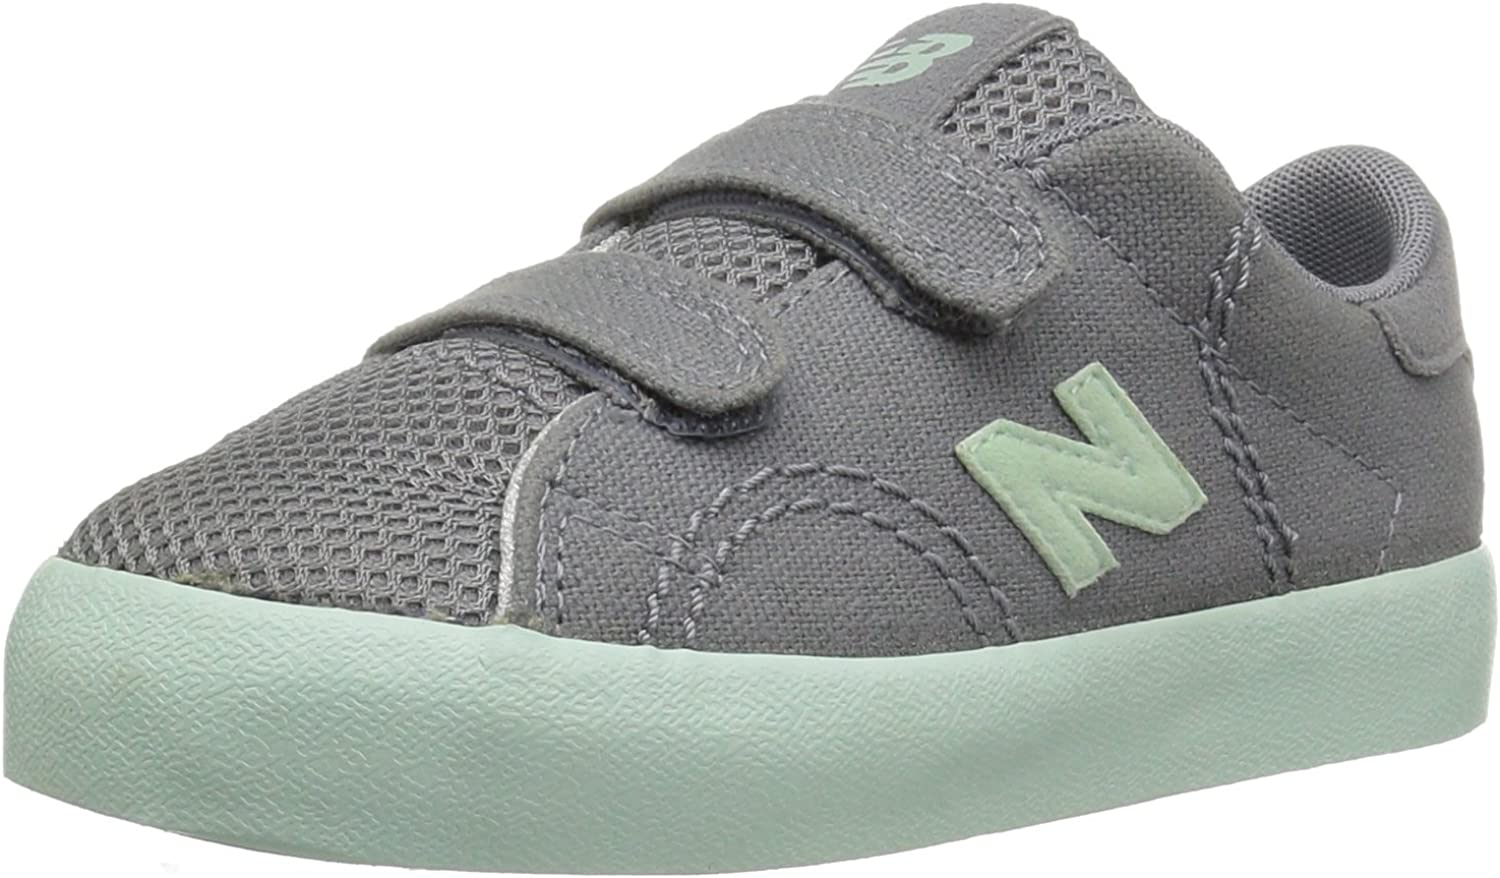 New Balance Unisex-Adult Court v1 Hook and Loop Sneaker